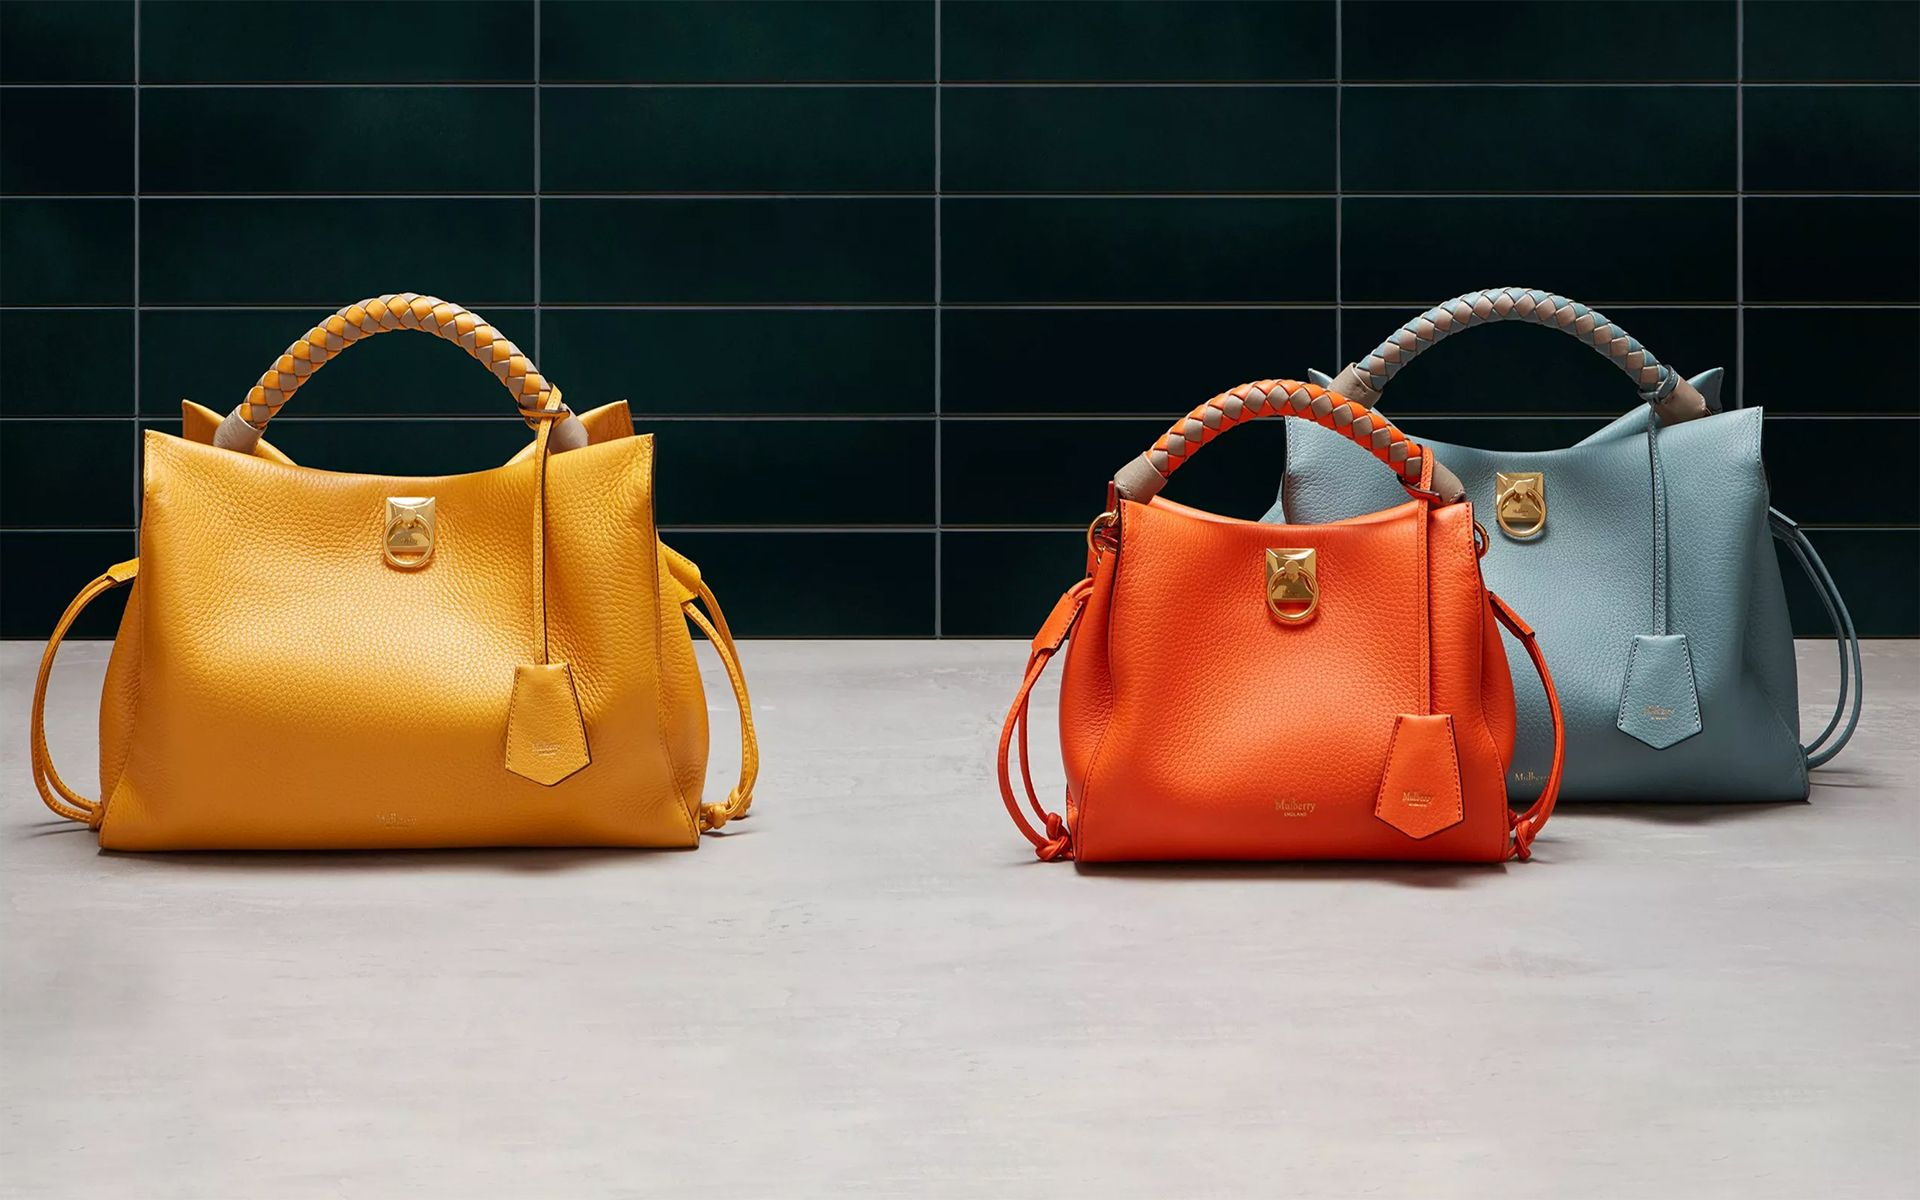 Discover The New Mulberry Iris Bag Collection